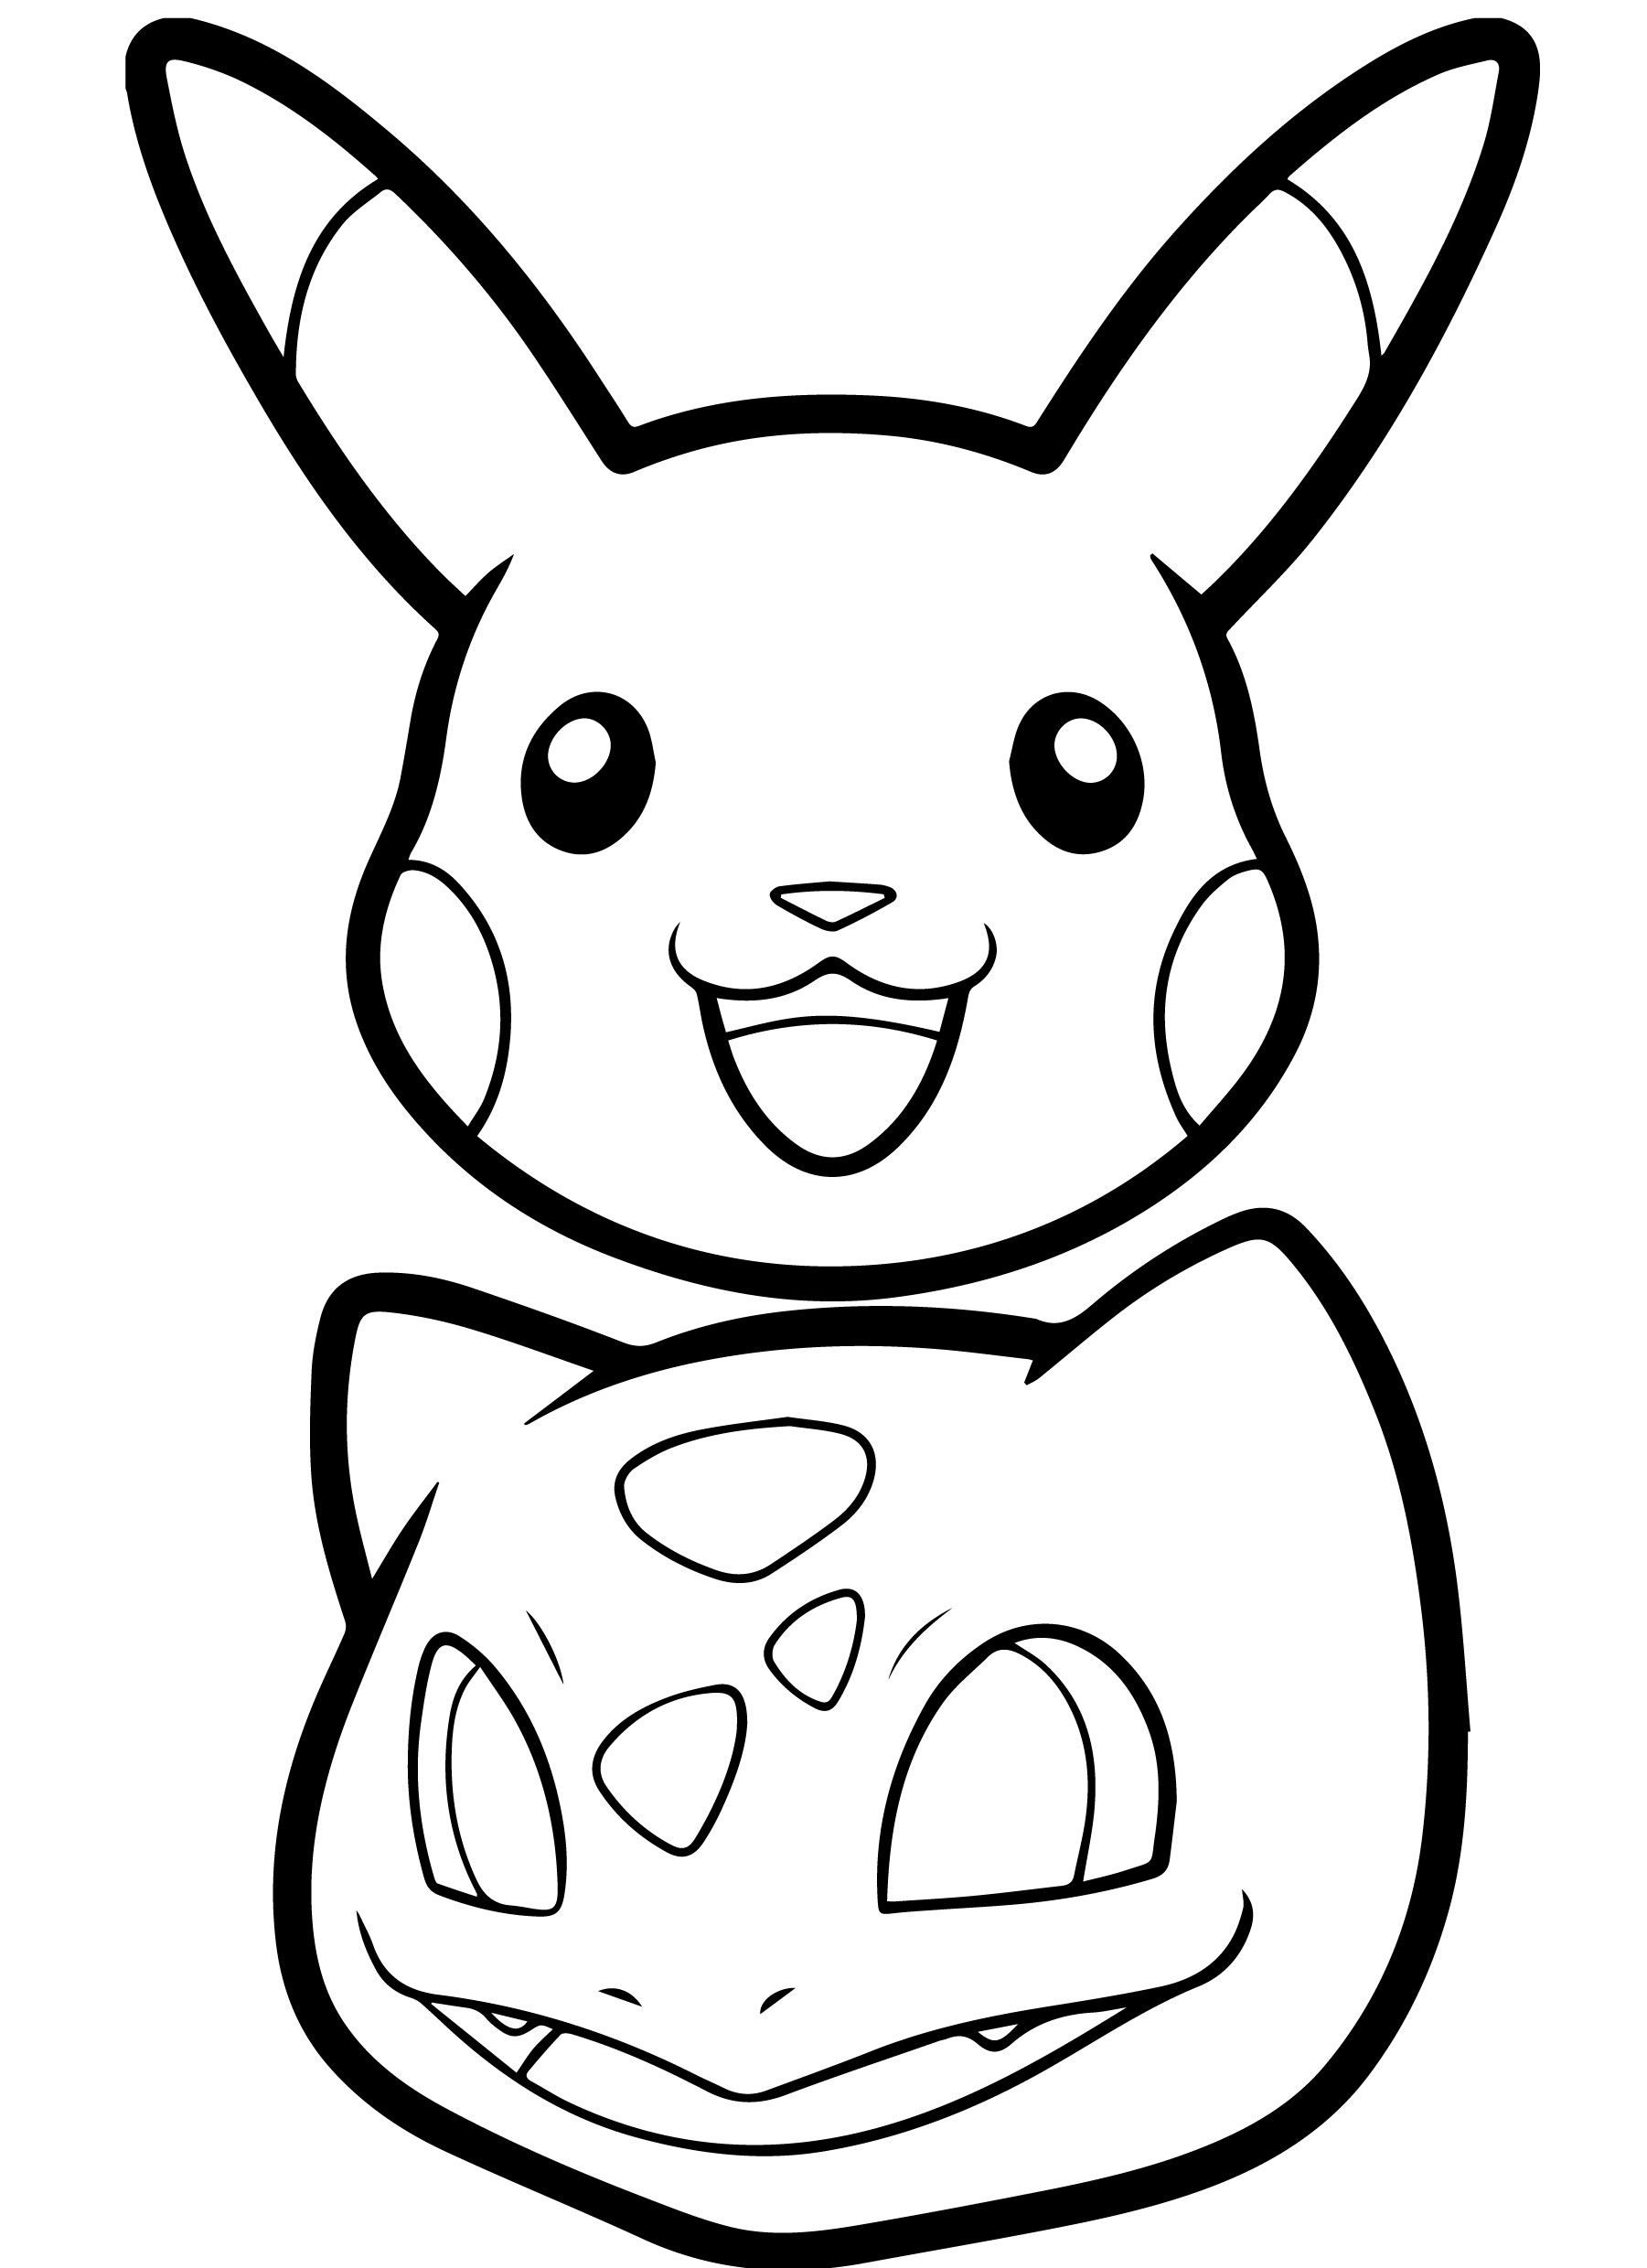 pikachu face coloring page pikachu coloring pages to download and print for free pikachu face page coloring